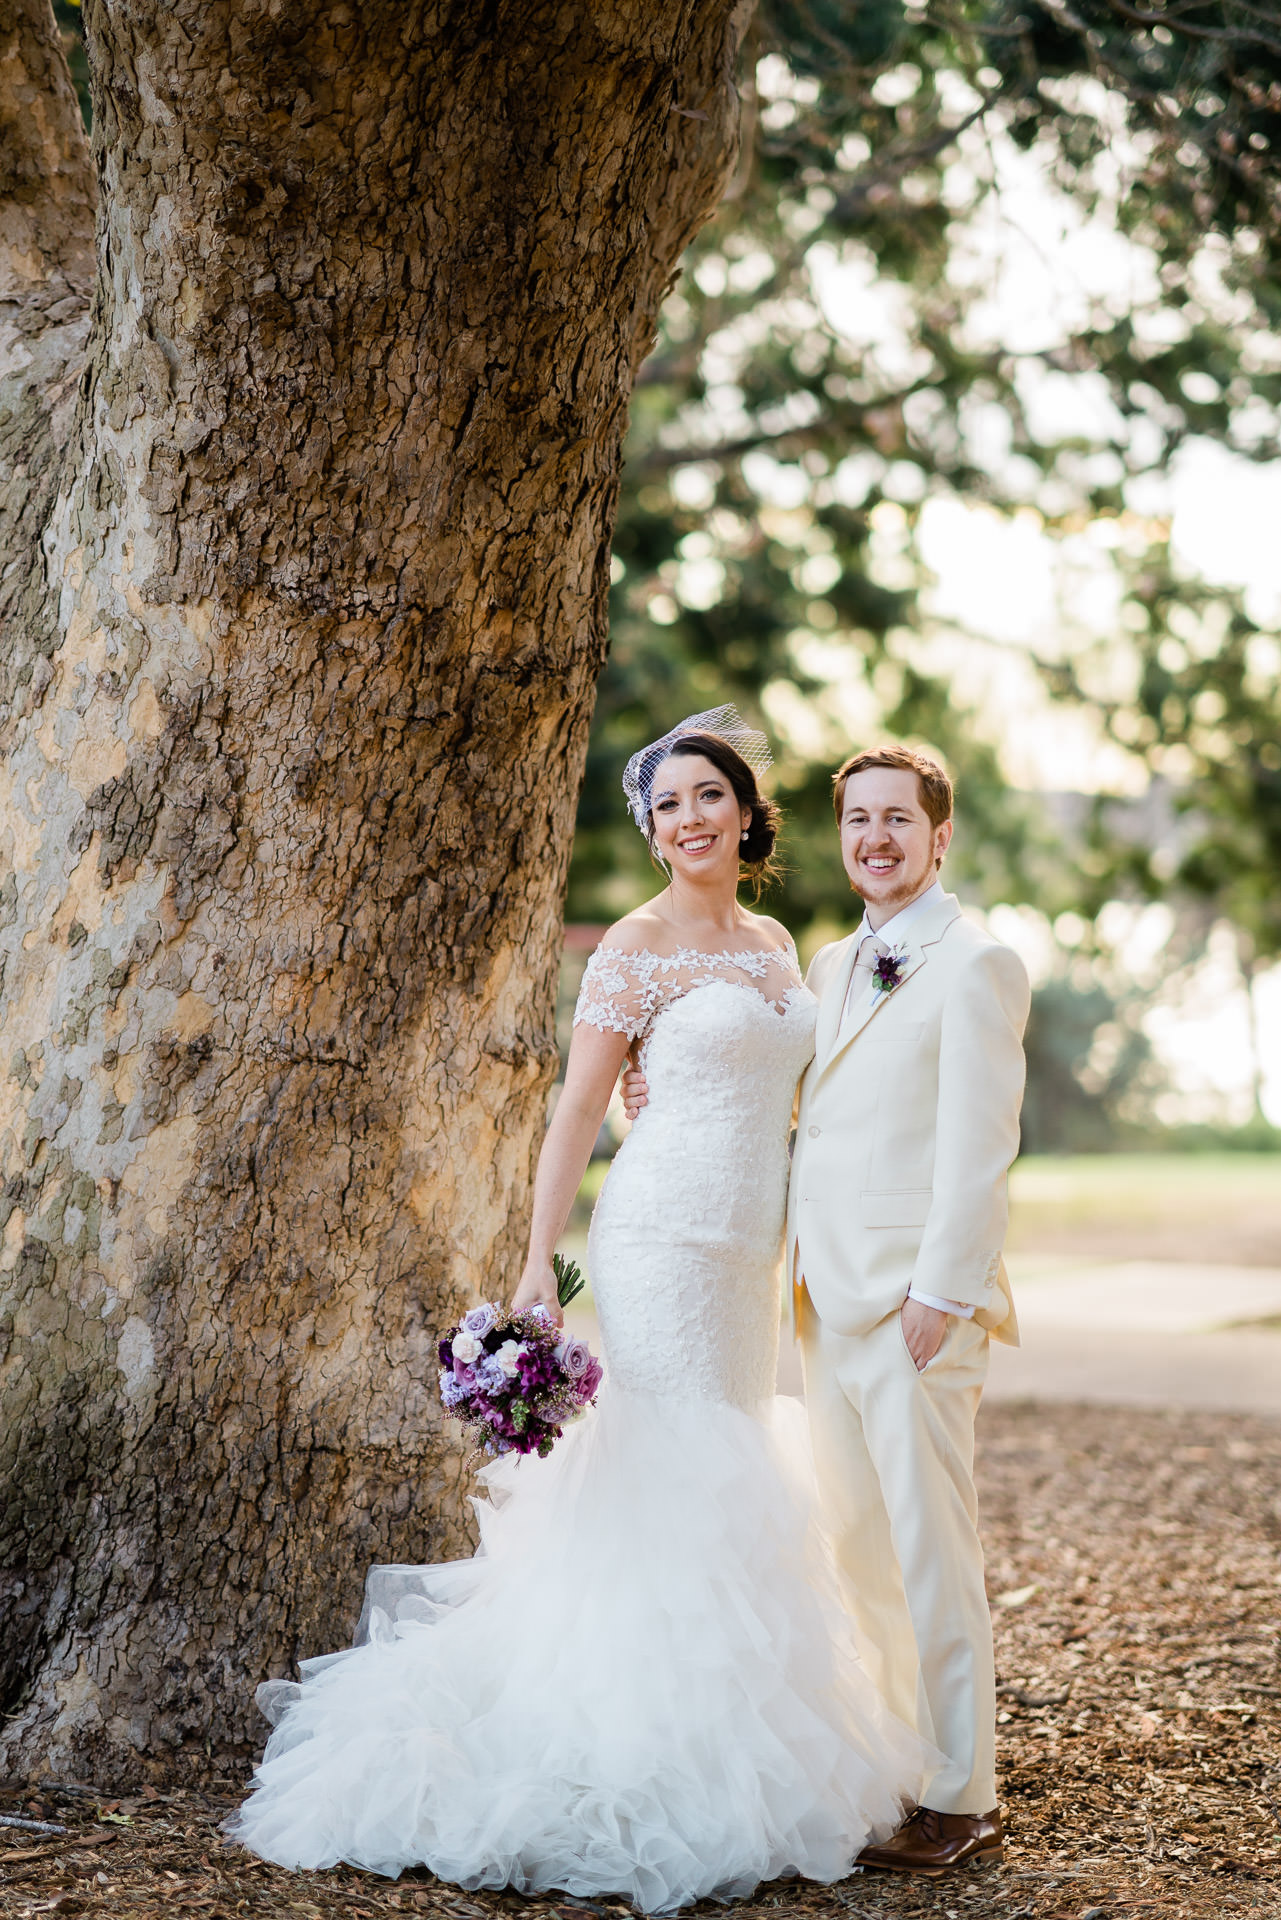 Bride and Groom go for a walk - Fuzzy Pear Studio Sydney Wedding Photography